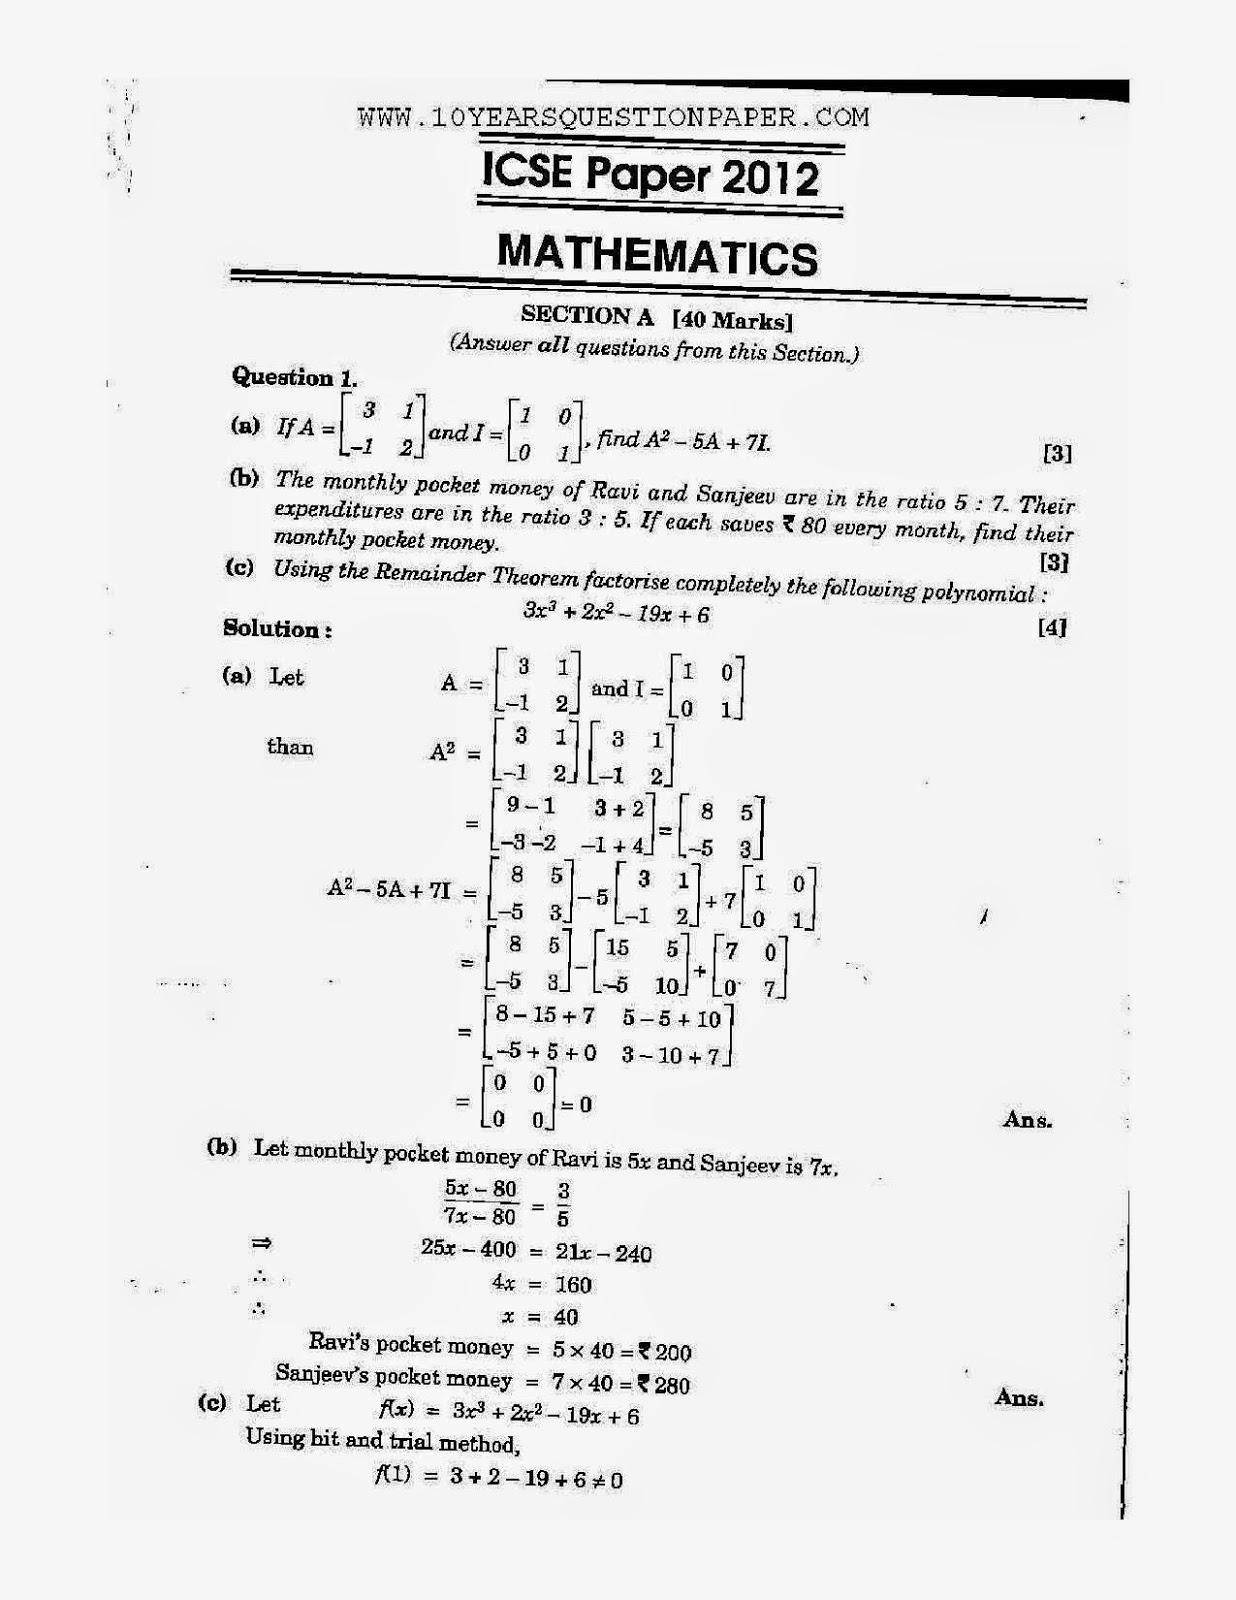 icse class 10th mathematics solved question paper 2012